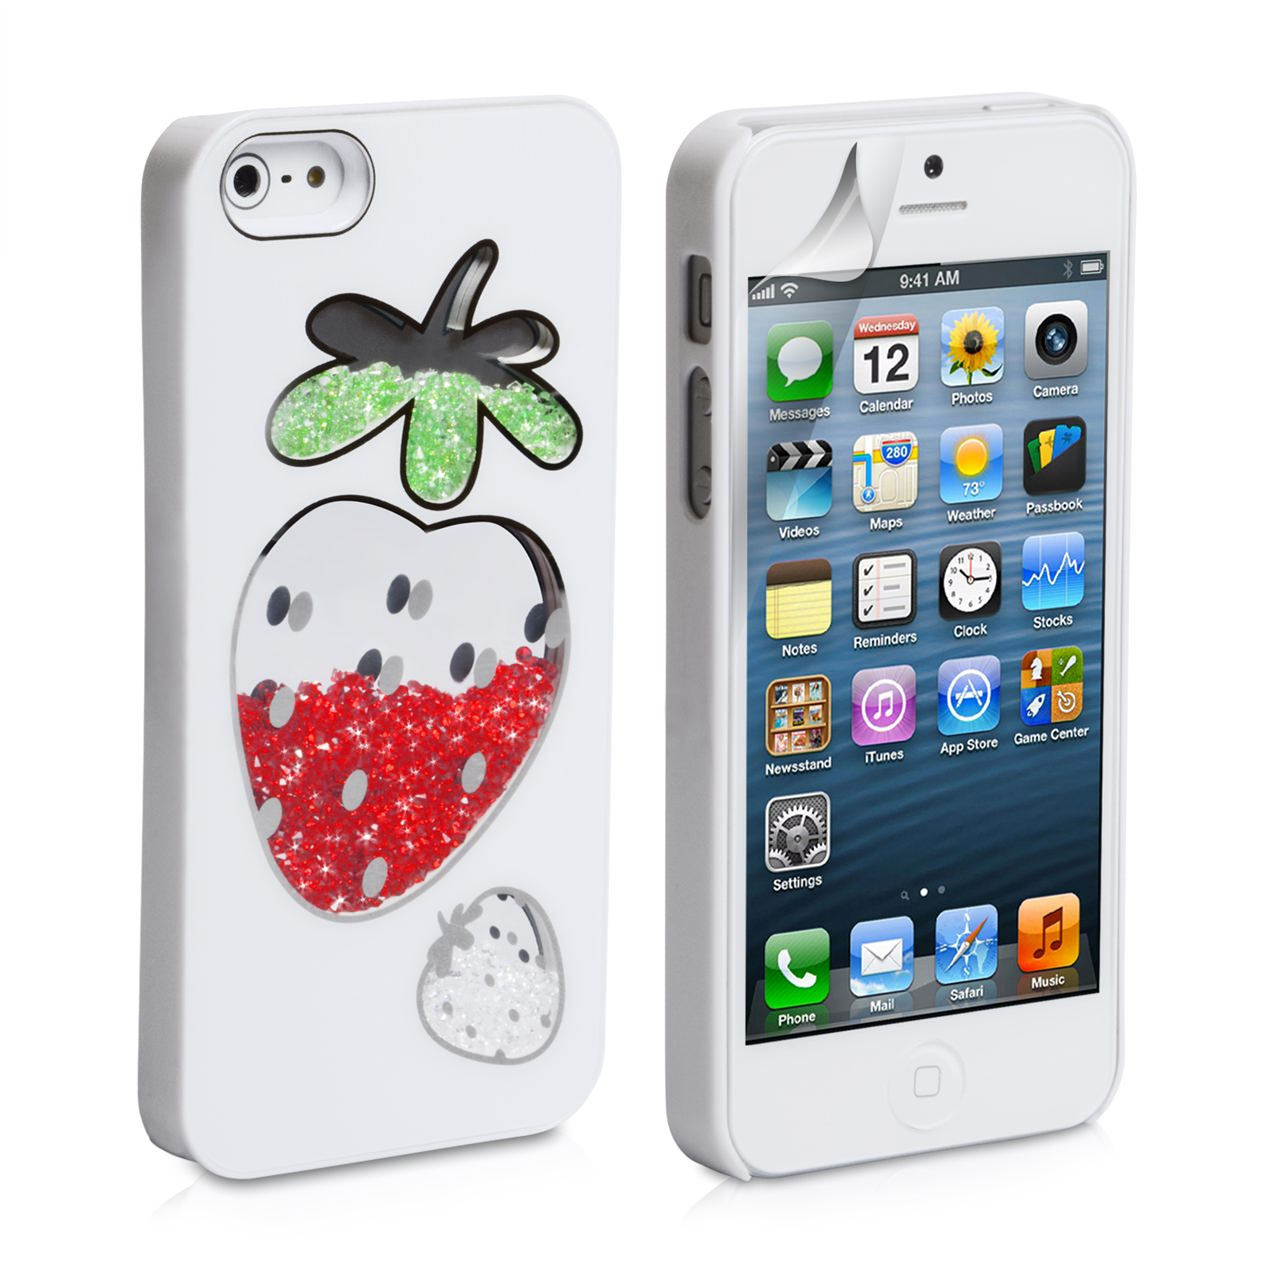 YouSave Accessories iPhone 5 / 5S Strawberry Bling Hard Case - White